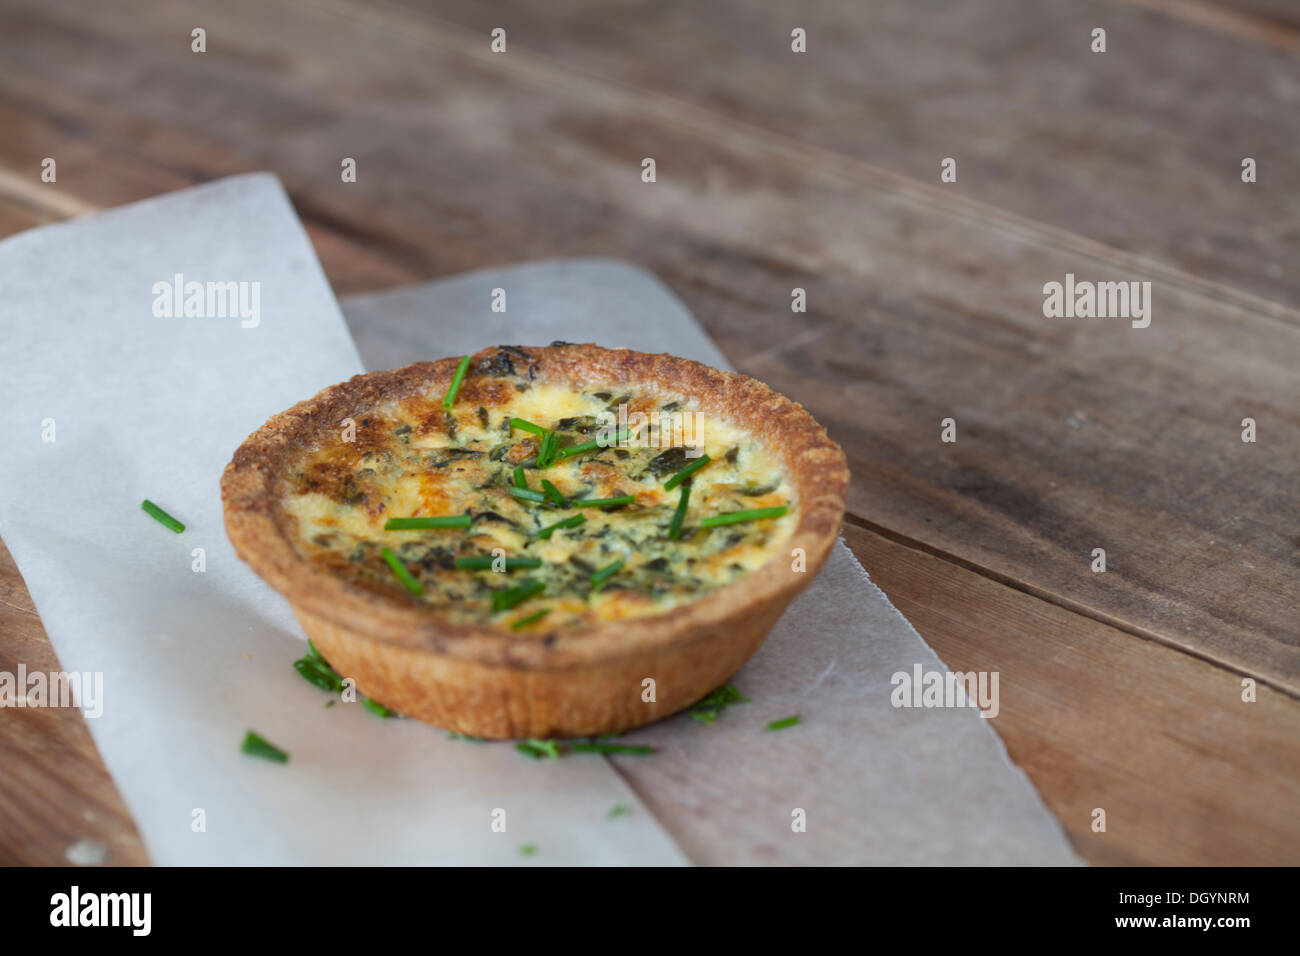 Spinach and feta quiche - Stock Image